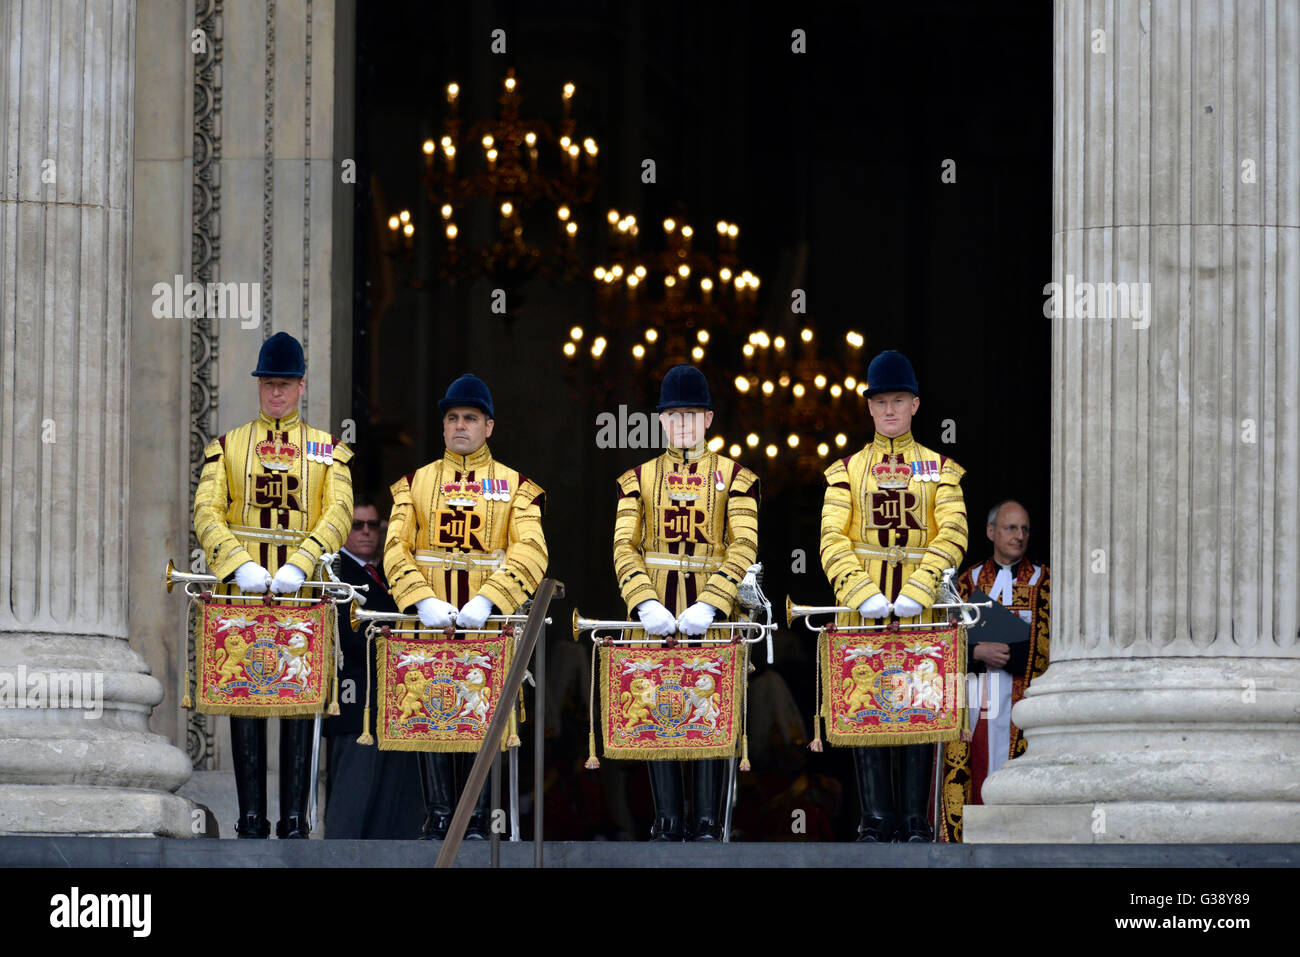 Archbishop of Canterbury, Justin Welby and State Trumpeters of the Household Cavalry await the Queen at National - Stock Image